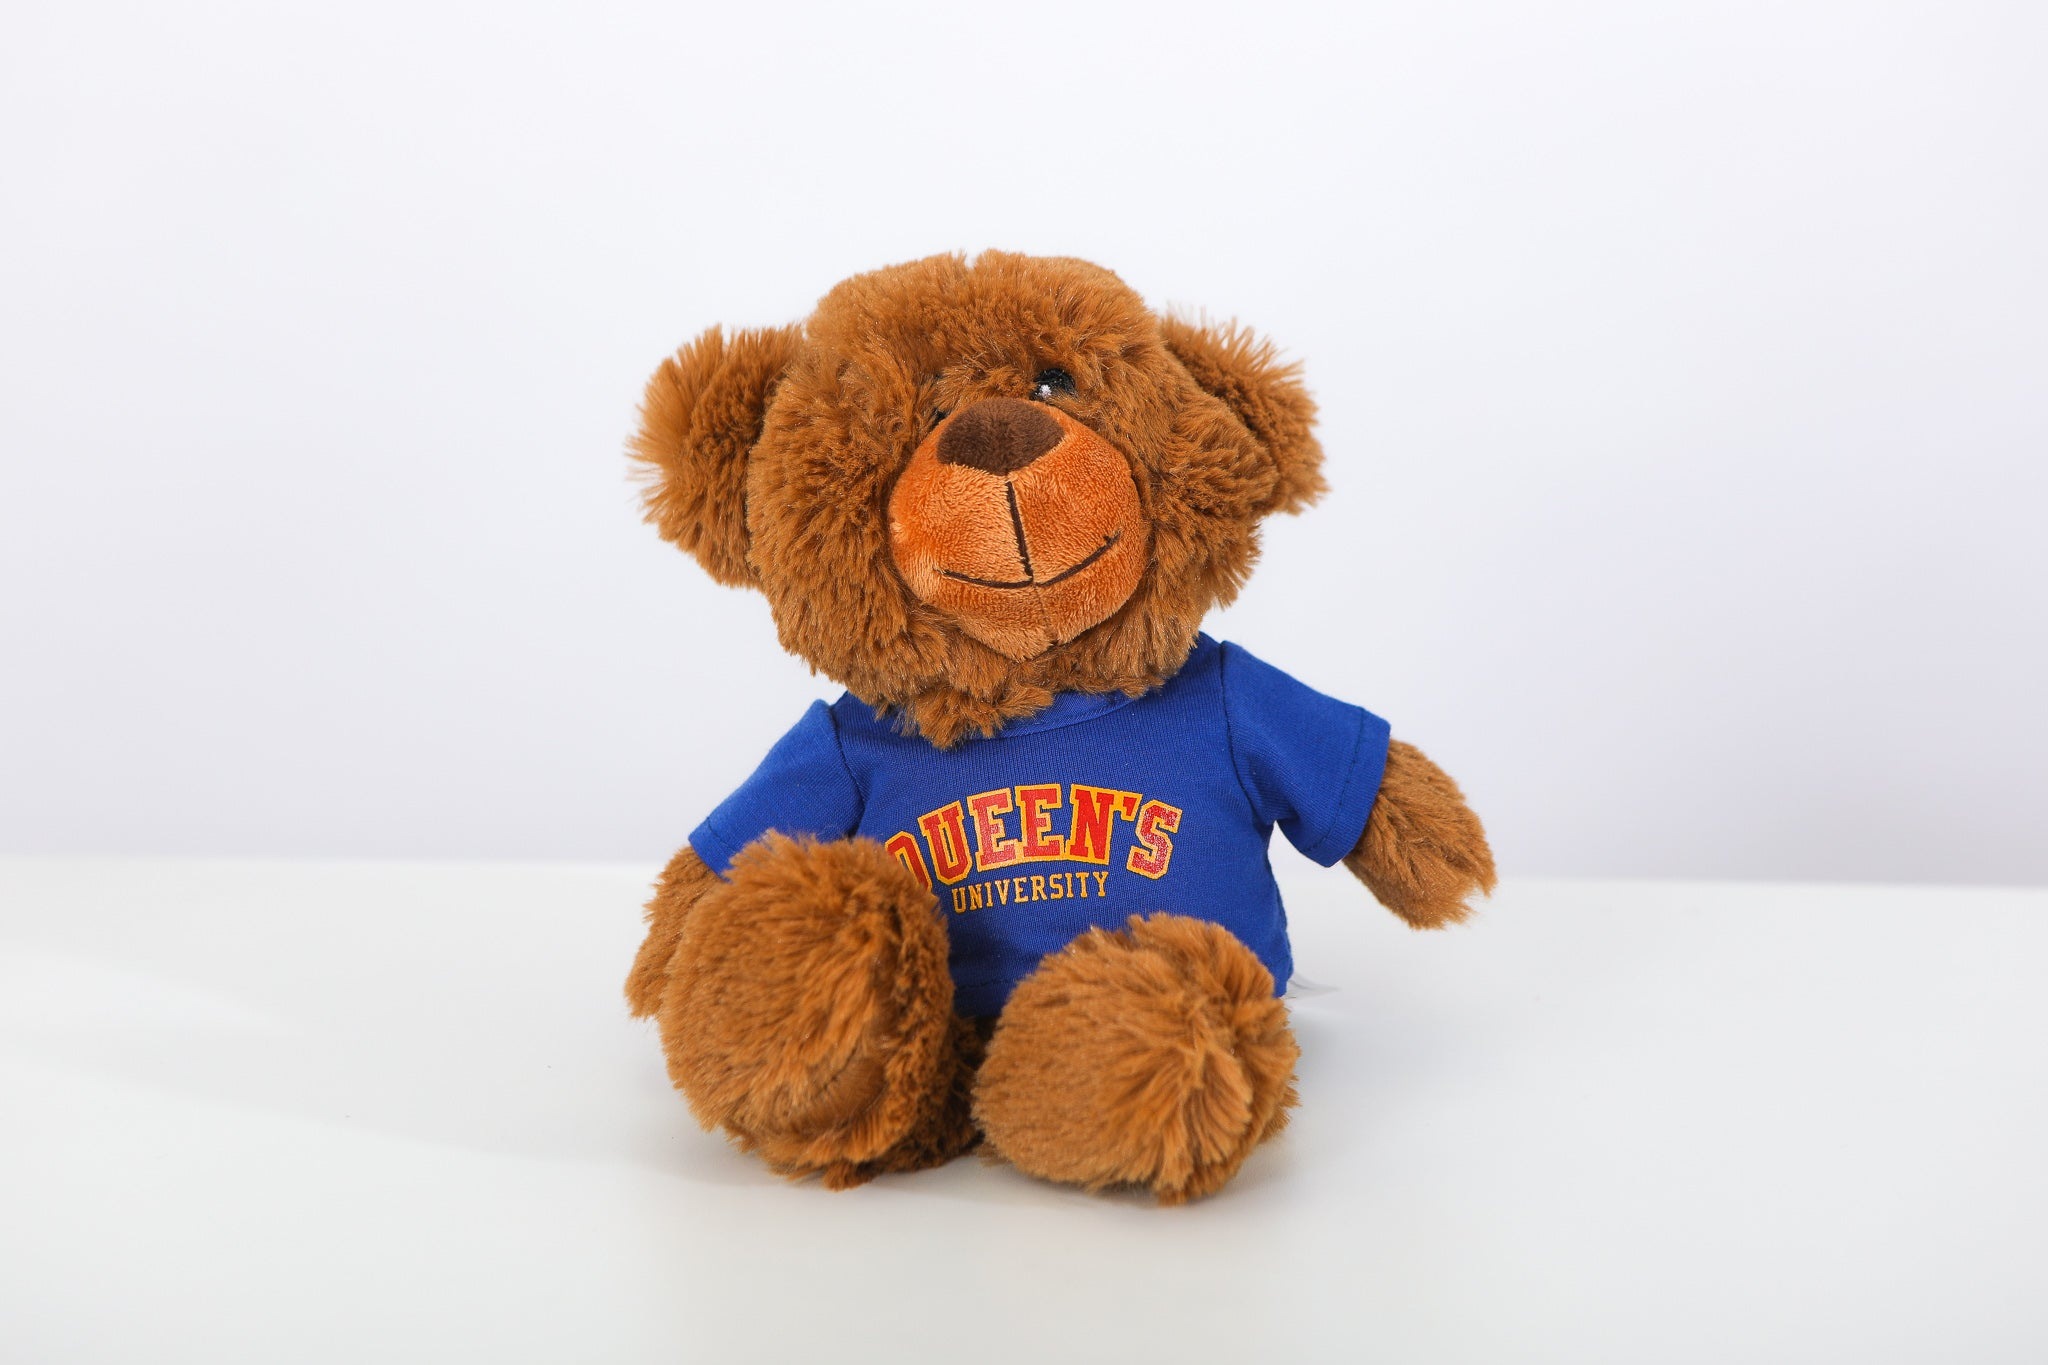 Teddy bear wearing a blue queens tshirt